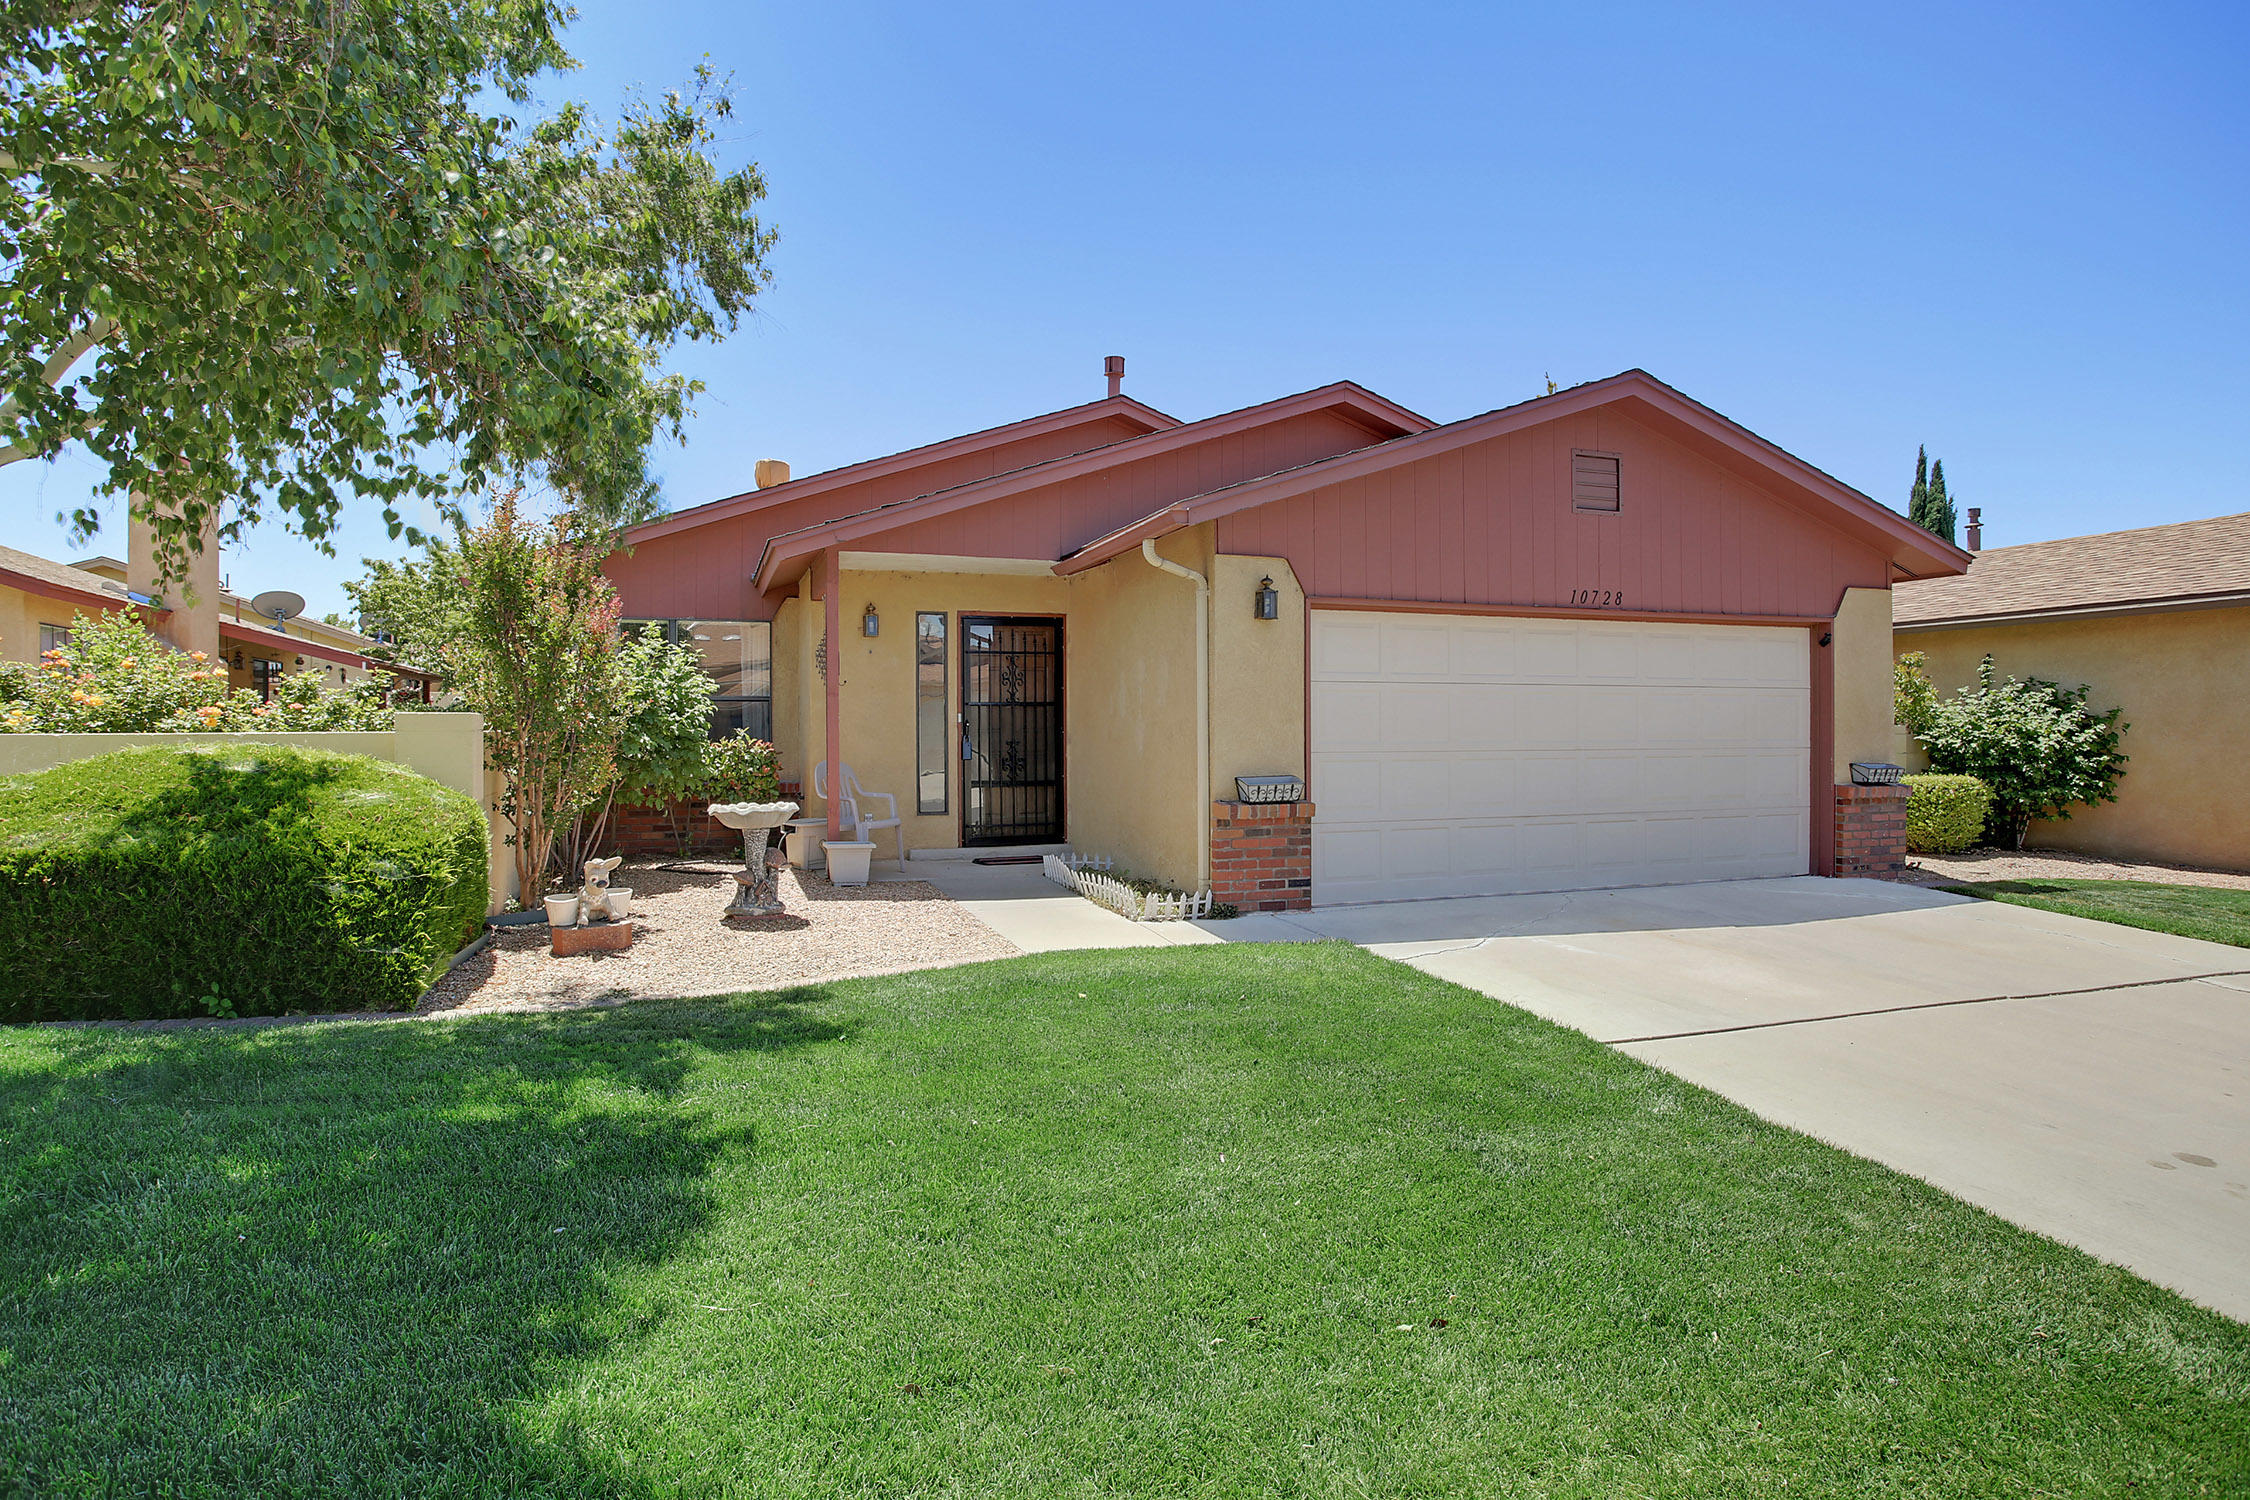 Wonderful 3 bedroom 2 bath single story home in gated community of Town Park. w Community pool, tennis court and trails, Open Bright floor plan with new refrigerated AC and Heat pump.  Vaulted ceiling, wood burning fireplace. Very well maintained Ready for new owner. Appliances Stay along with dining table and booth. Yard offers great spot for garden and has tasty pear tree  Land is Leased can be purchased from HOA ask for details.